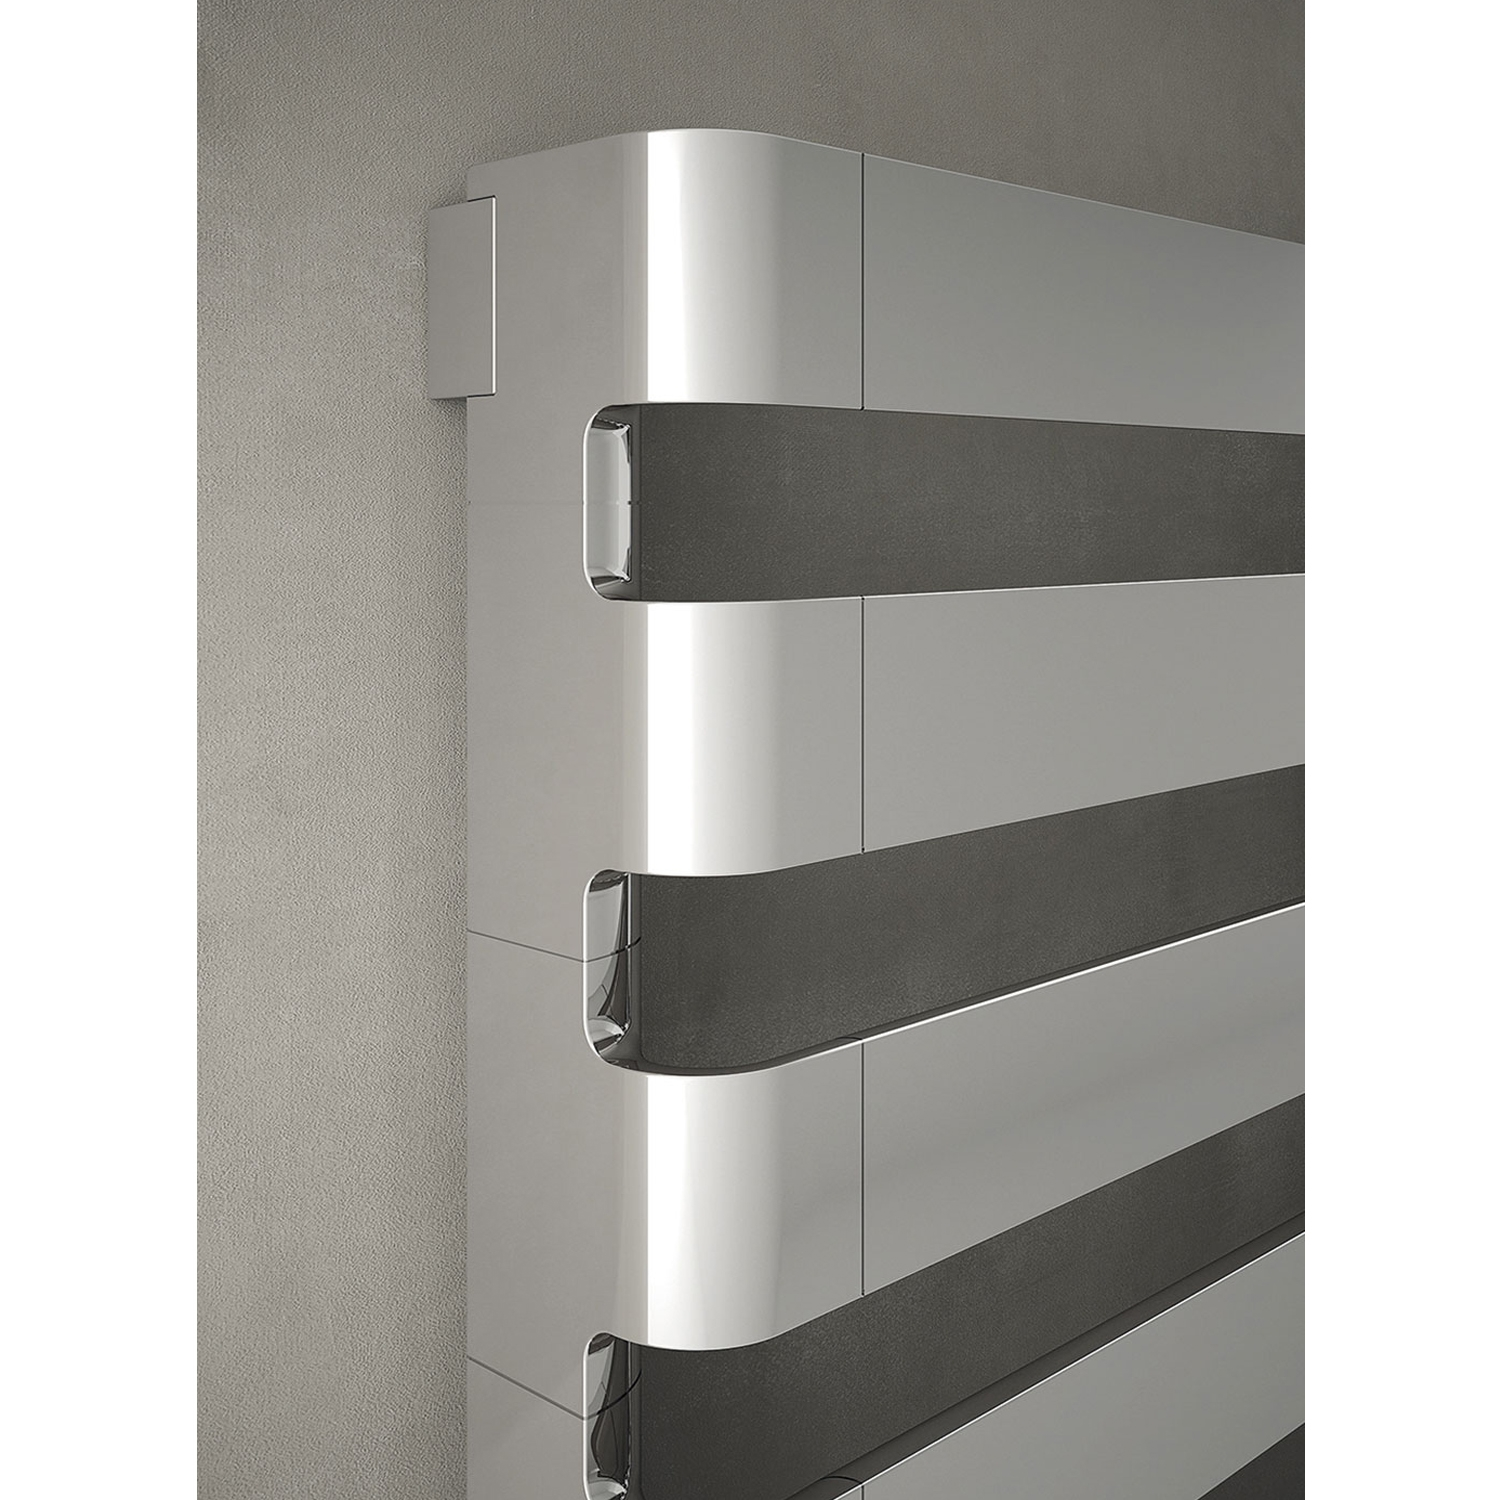 TRC BDO Step Heated Towel Rail 310mm H x 1800mm W - Chrome